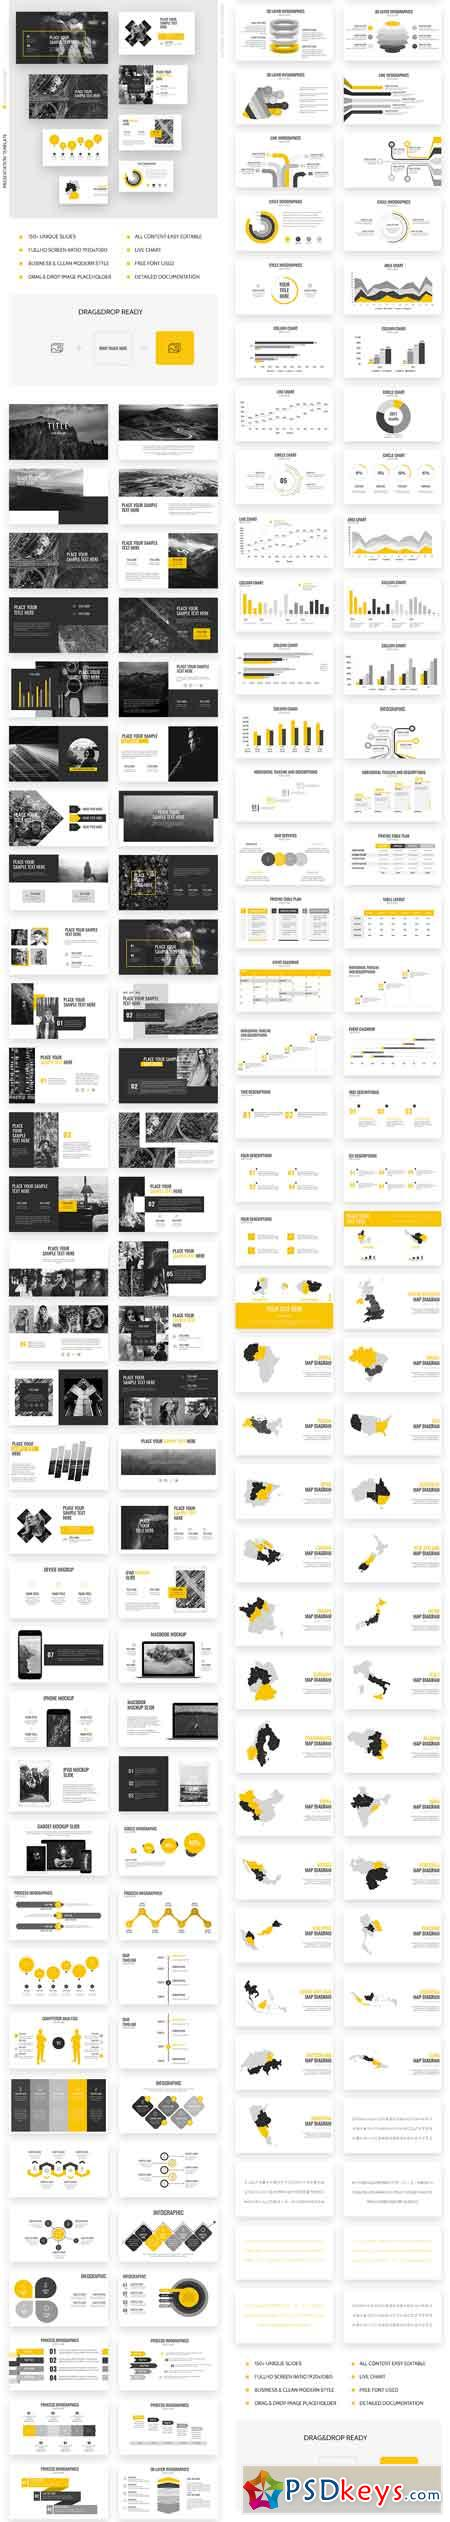 powerpoint » free download photoshop vector stock image via, Modern powerpoint